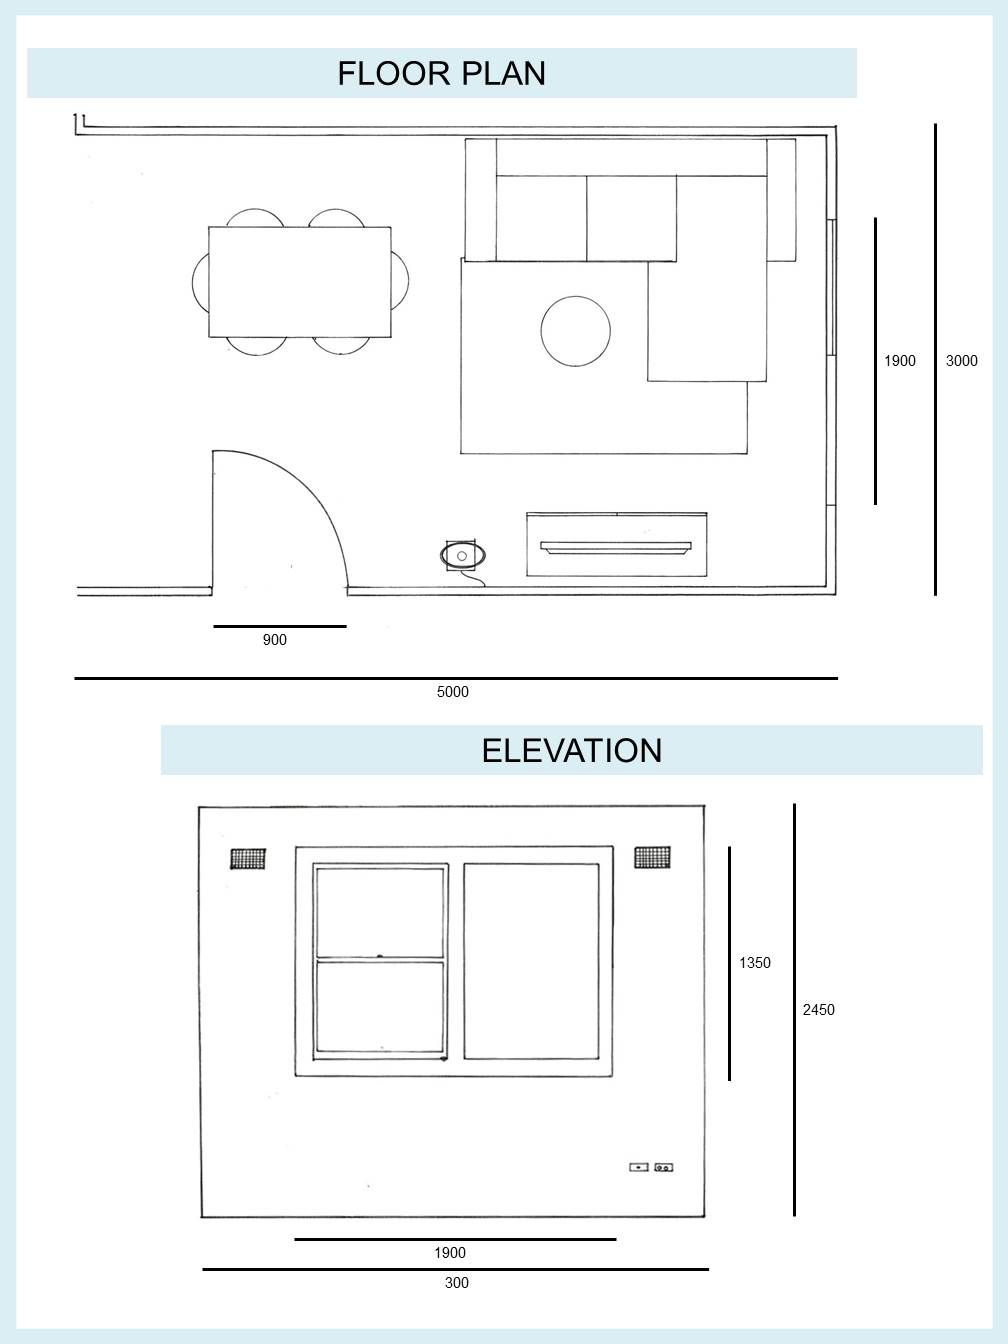 Drawing Floor Plan And Elevation Living Room Diploma Of